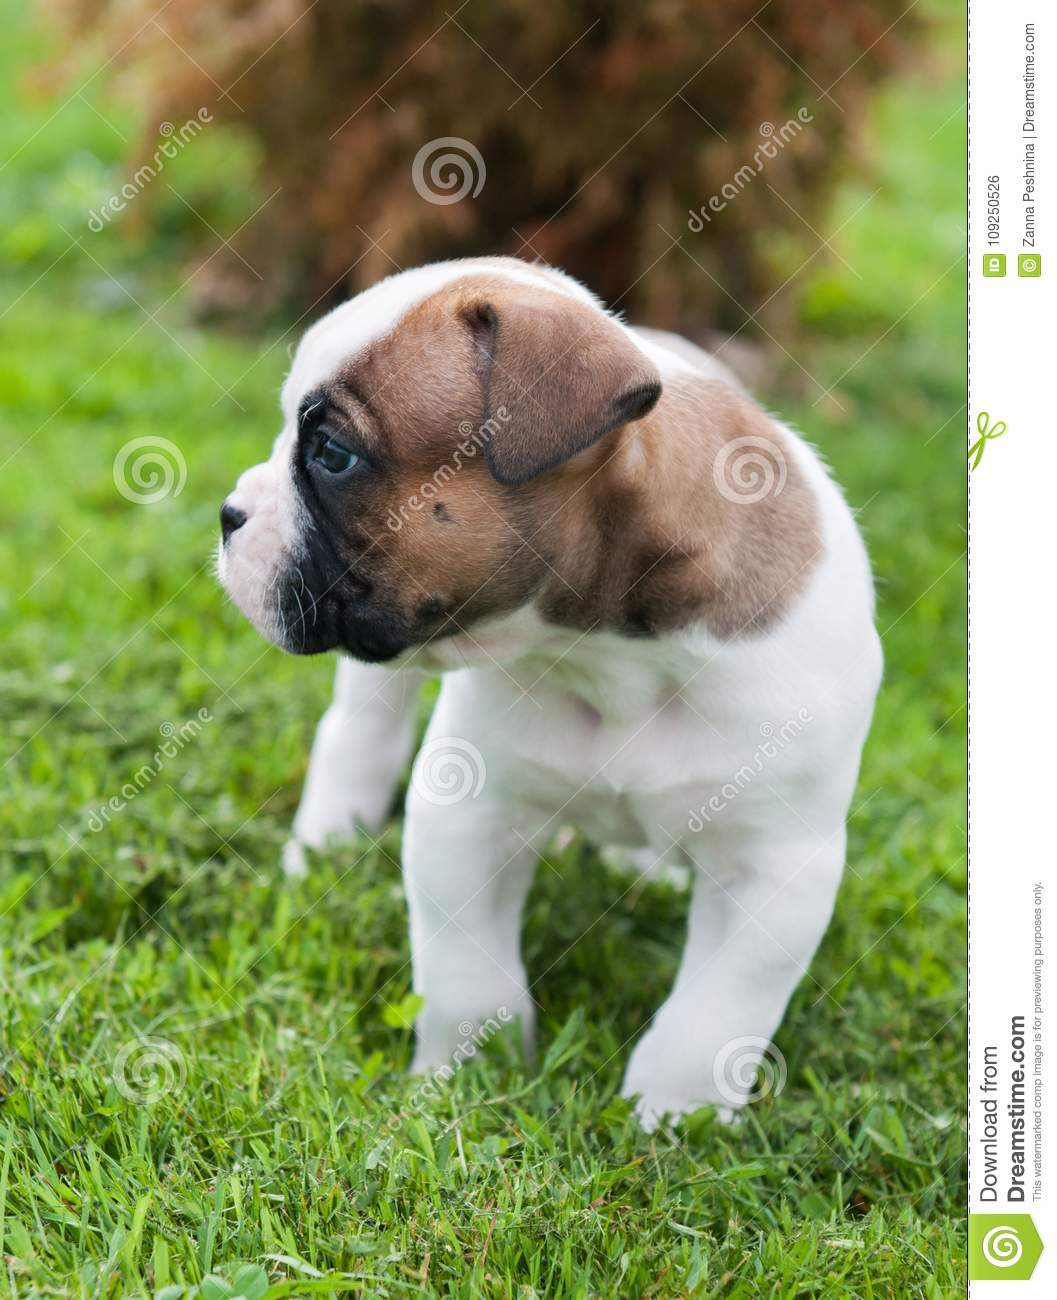 Funny Nice Red American Bulldog Puppy On Nature Stock Photo Image Of Playing Portrait 109250526